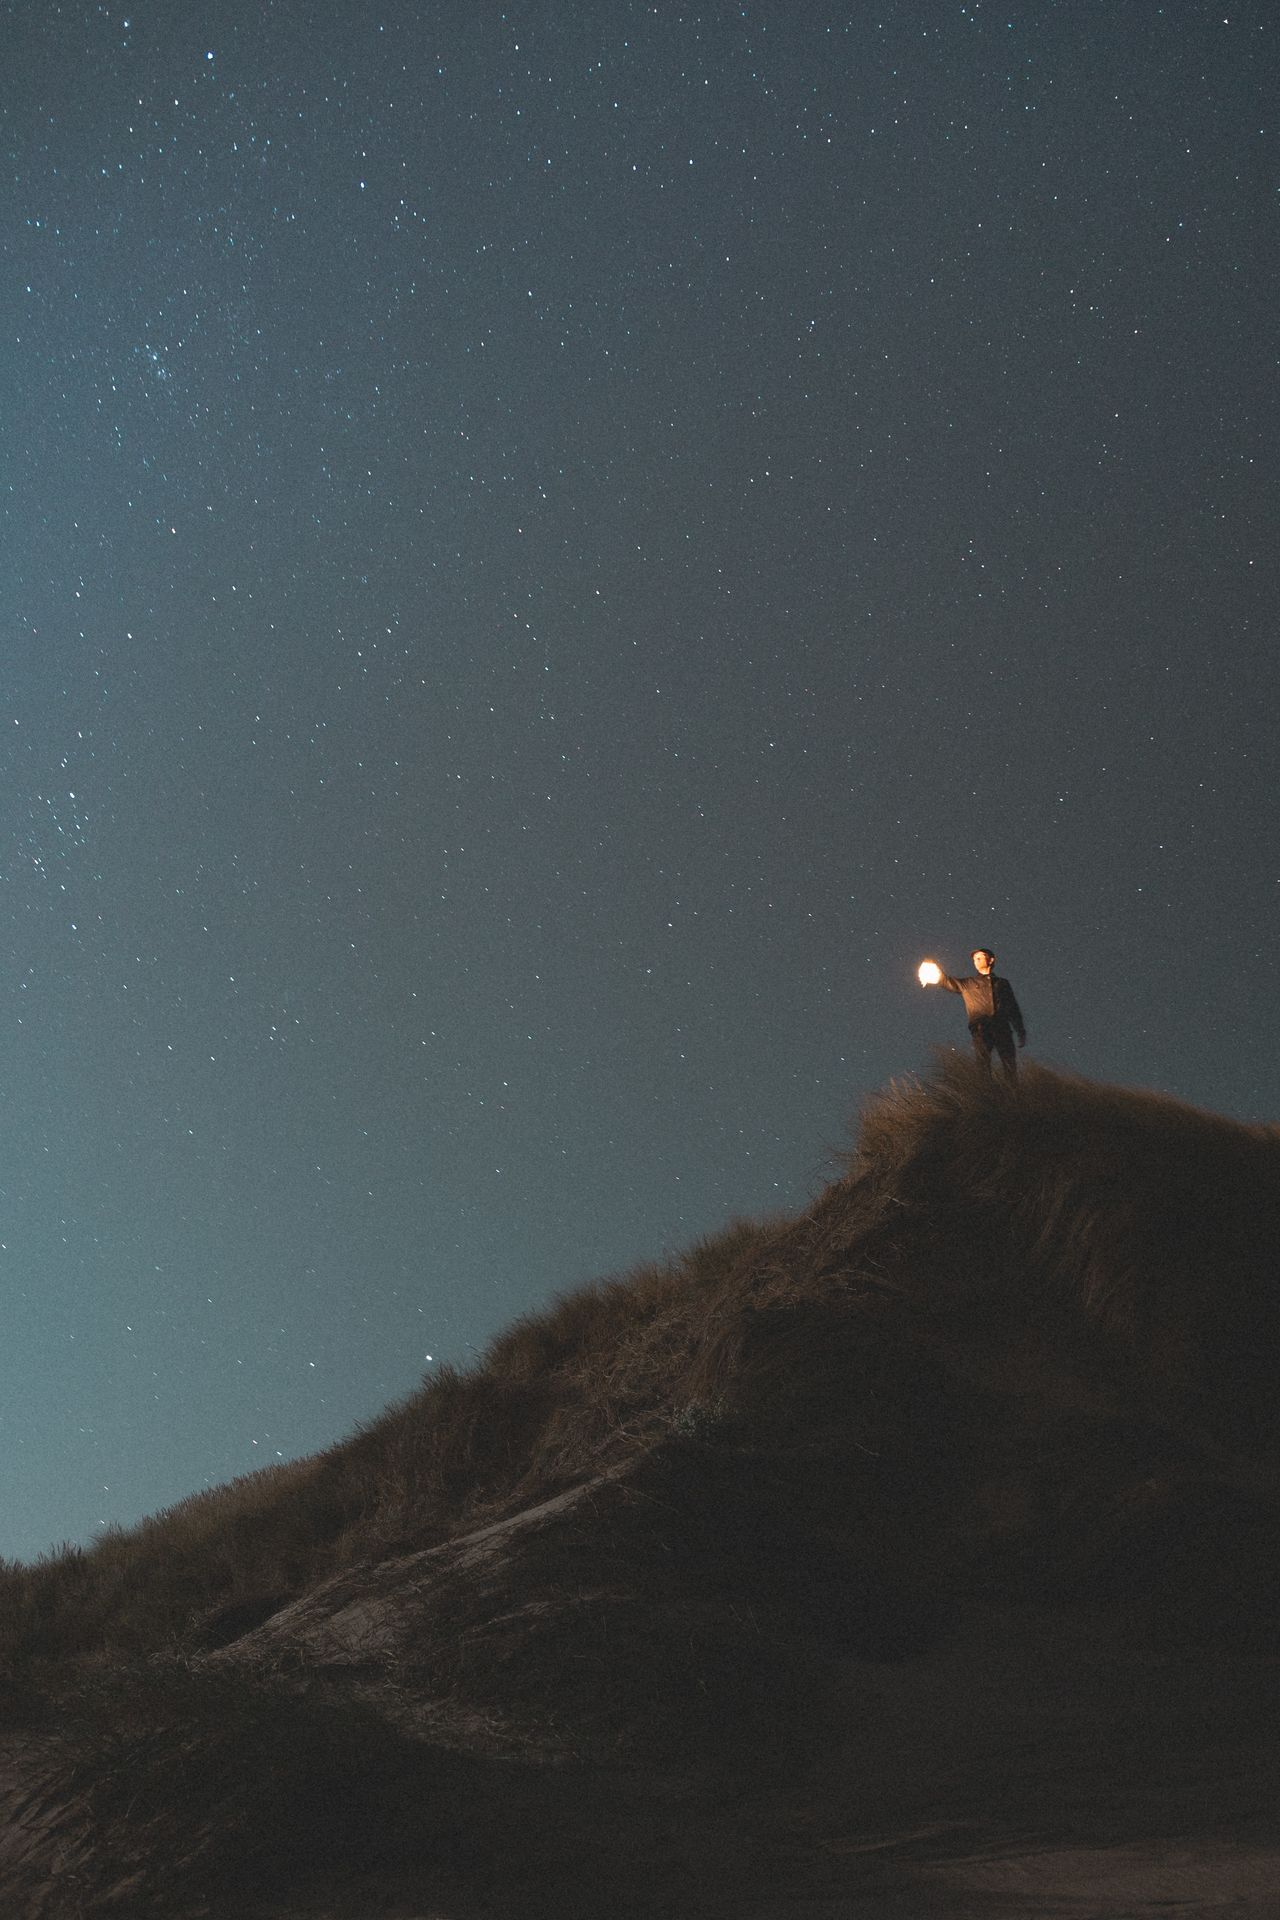 Low angle view of man on mountain against sky at night